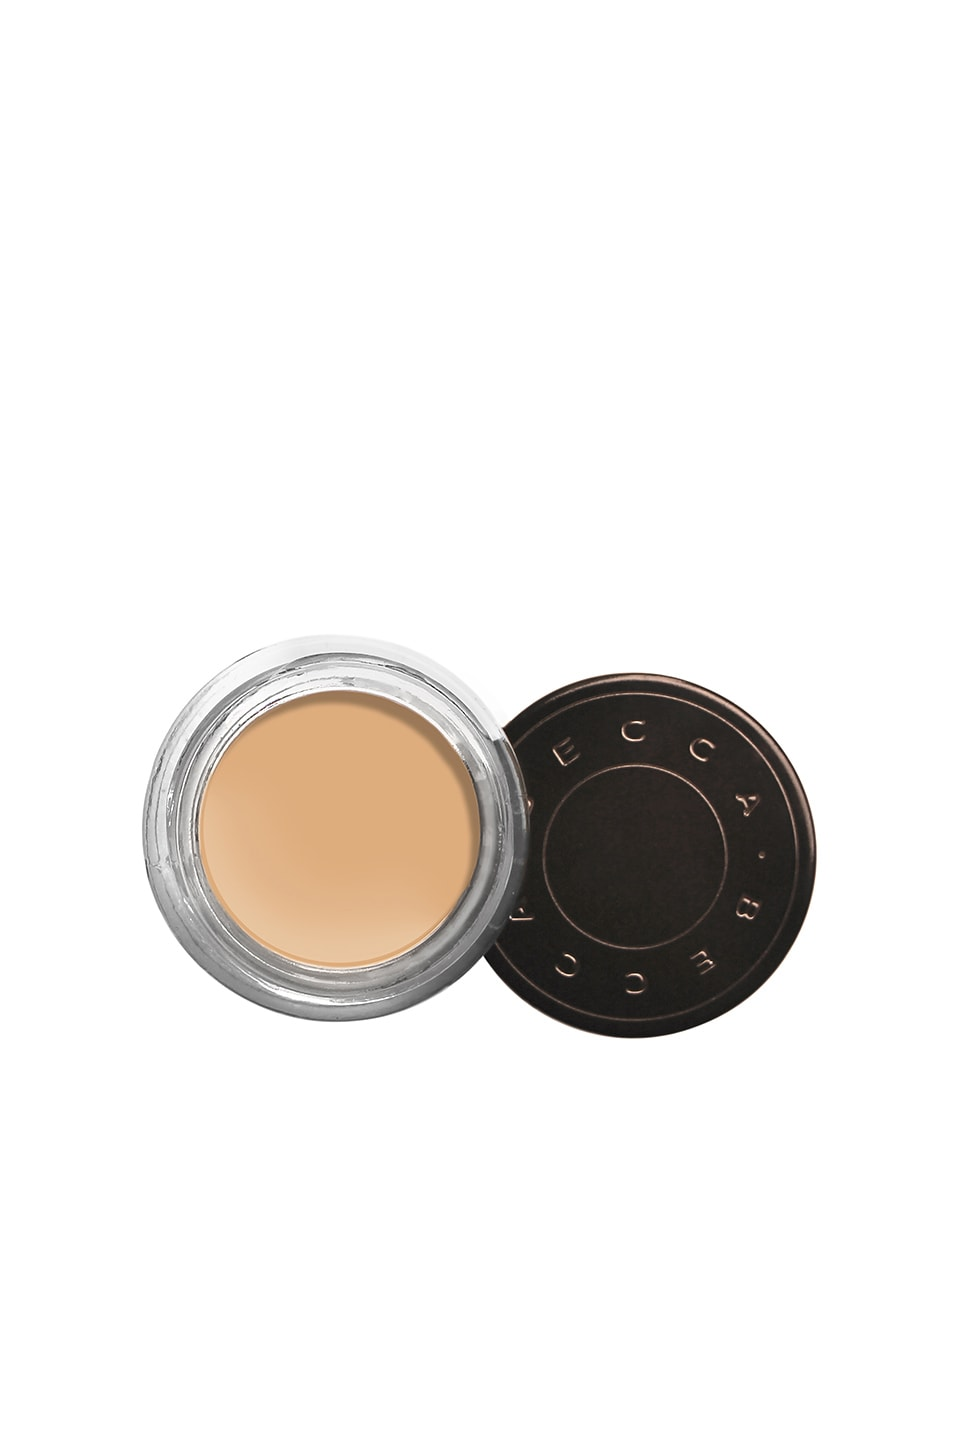 BECCA Ultimate Coverage Concealing Creme in Butterscotch